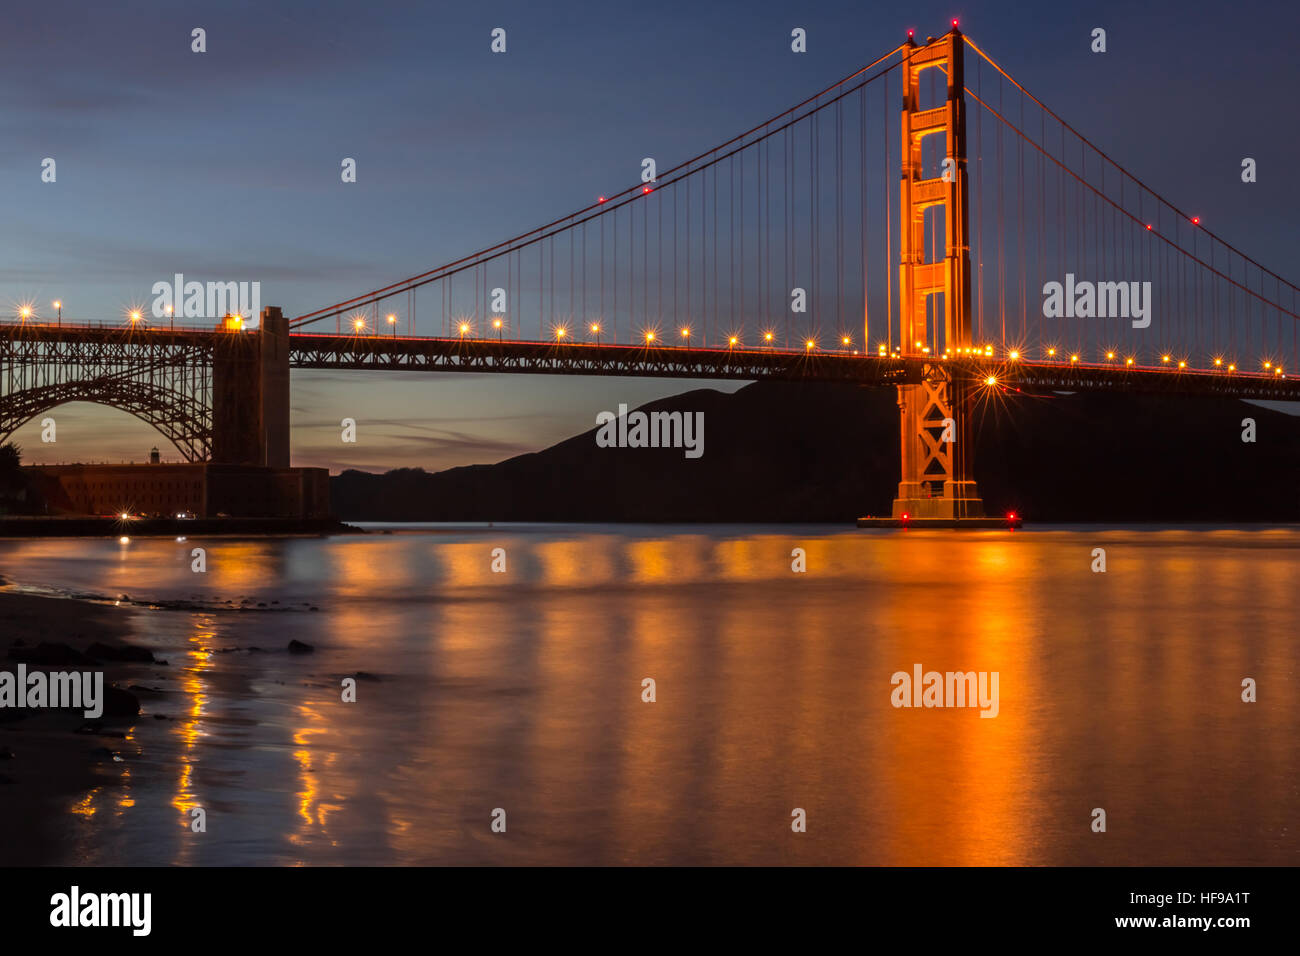 Golden Gate Bridge And Water Reflections. Fort Point, San Francisco, California, USA - Stock Image